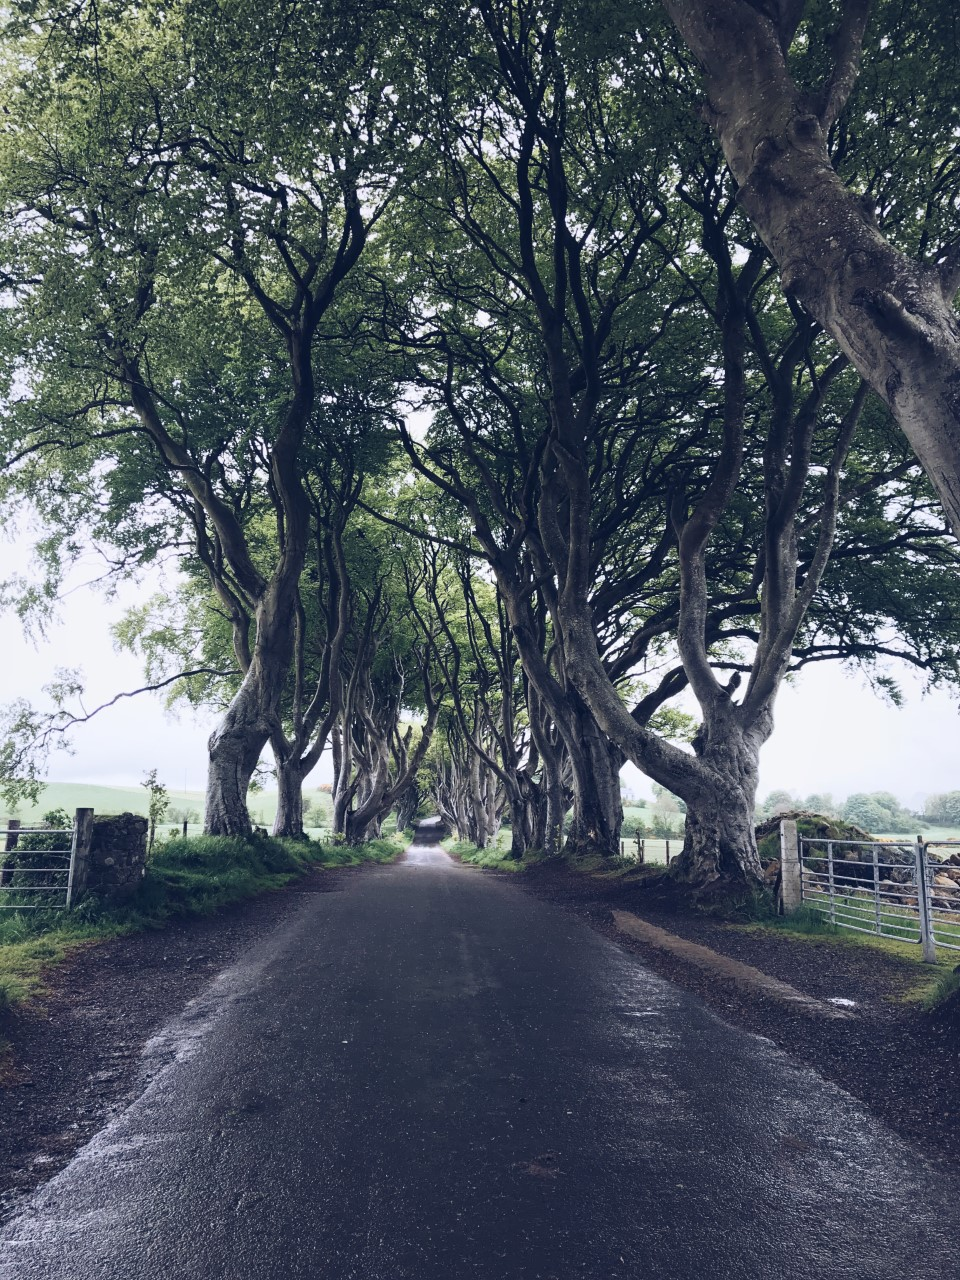 The Dark Hedges, Northern Ireland. Games of Thrones tourist destination - I have edited out all the people!